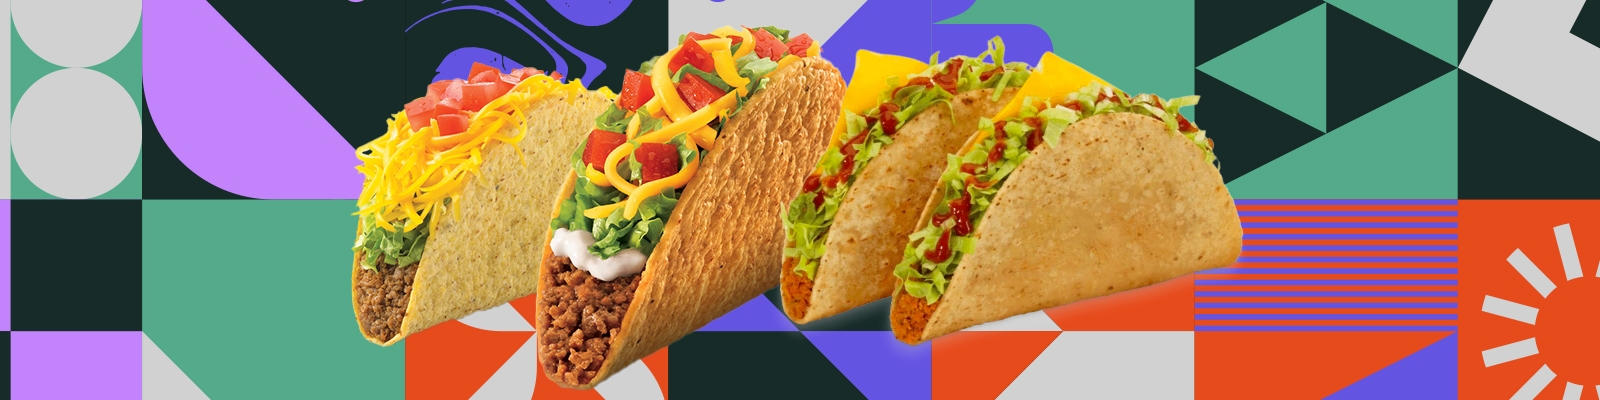 An LA Taco Snob Ranks Every Fast Food Taco From Worst To Best